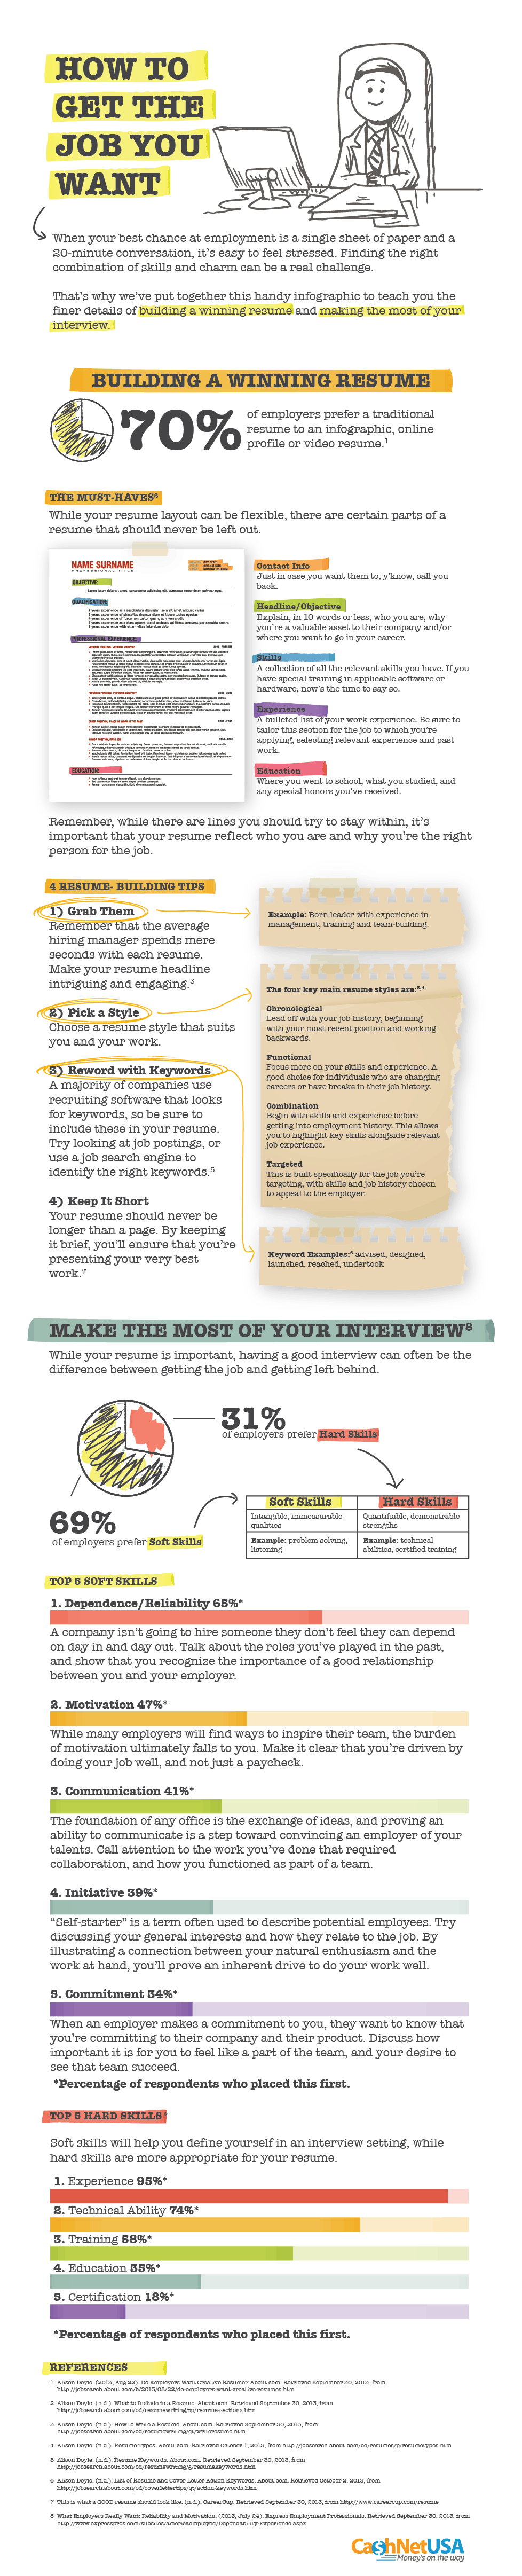 How-to-Get-the-Job-You-Dreamt-Infographic